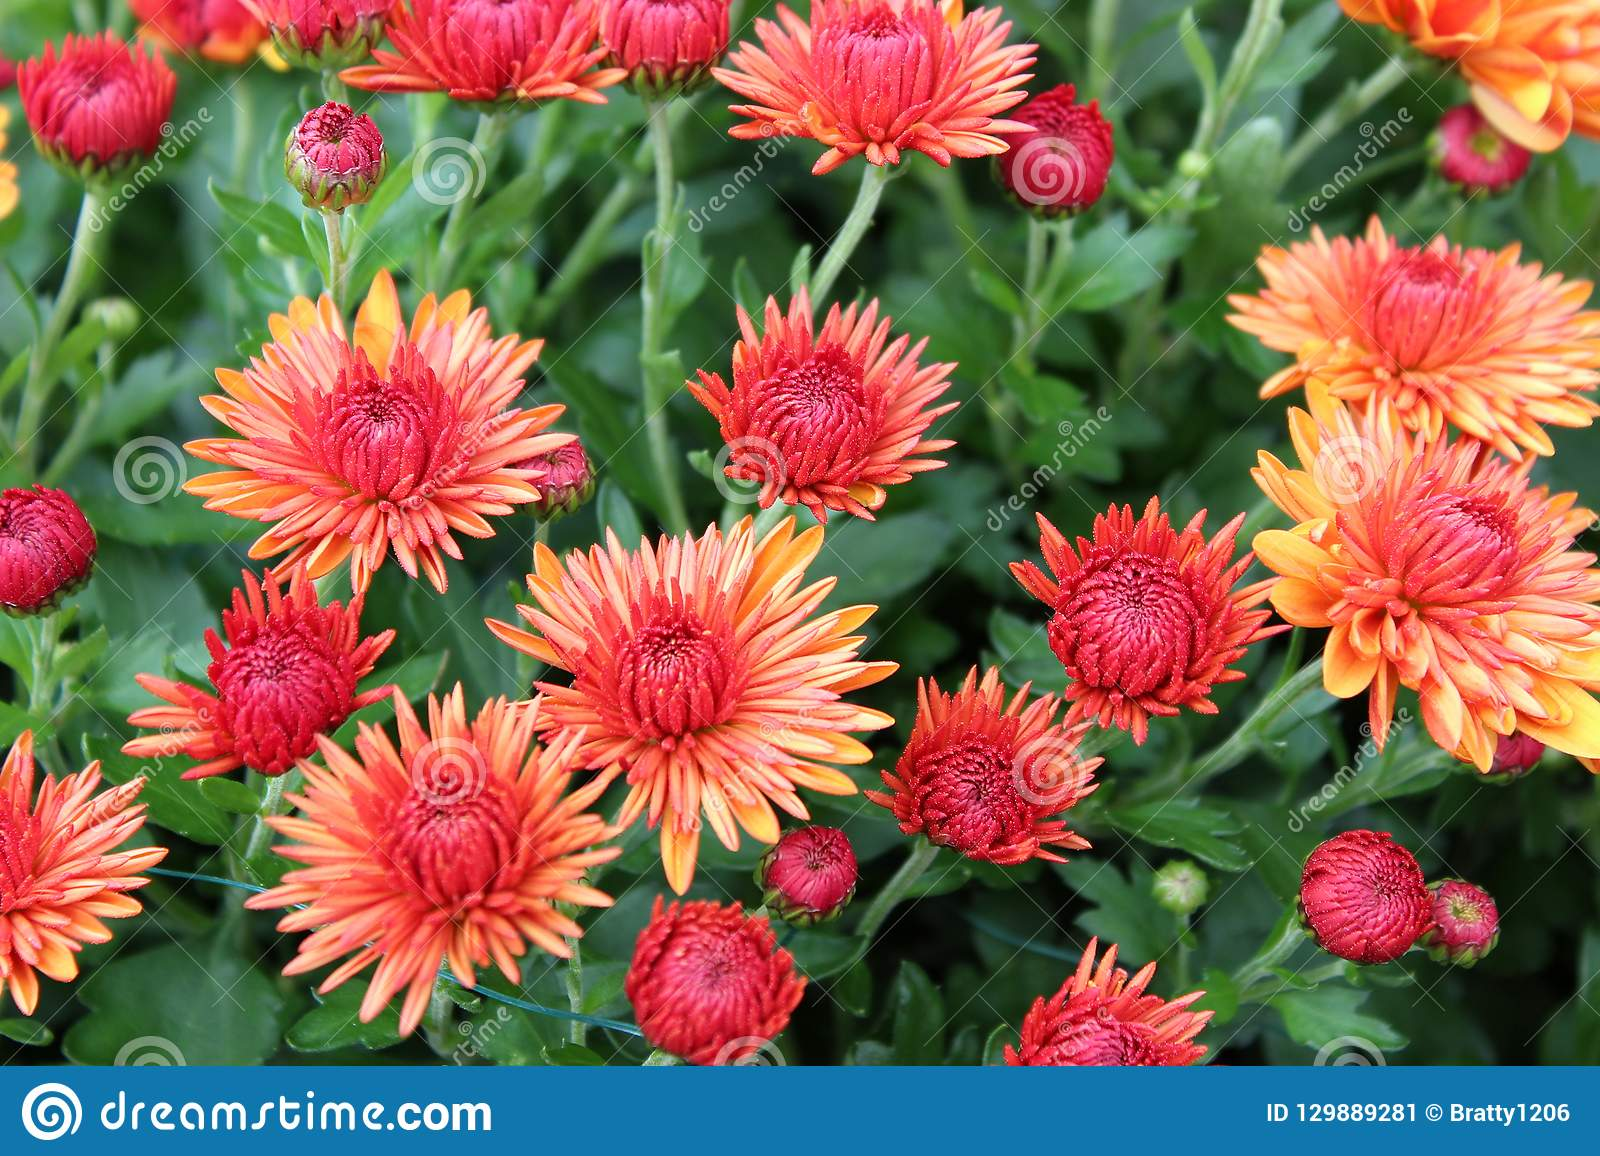 Background Image Of Beautiful Fall Flowers In Orange And Yellow